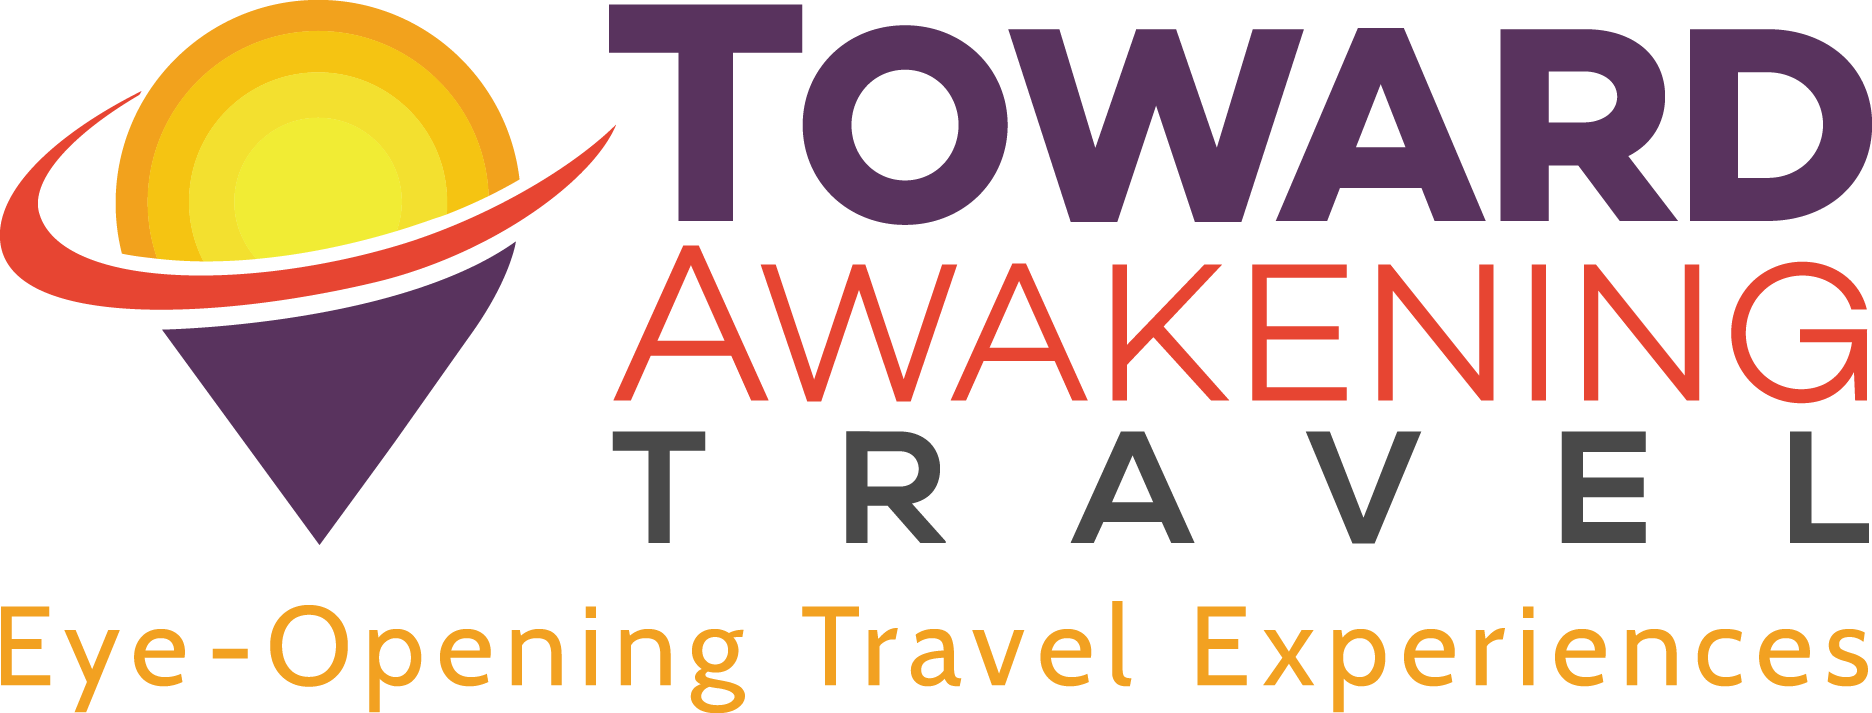 Toward Awakening Travel